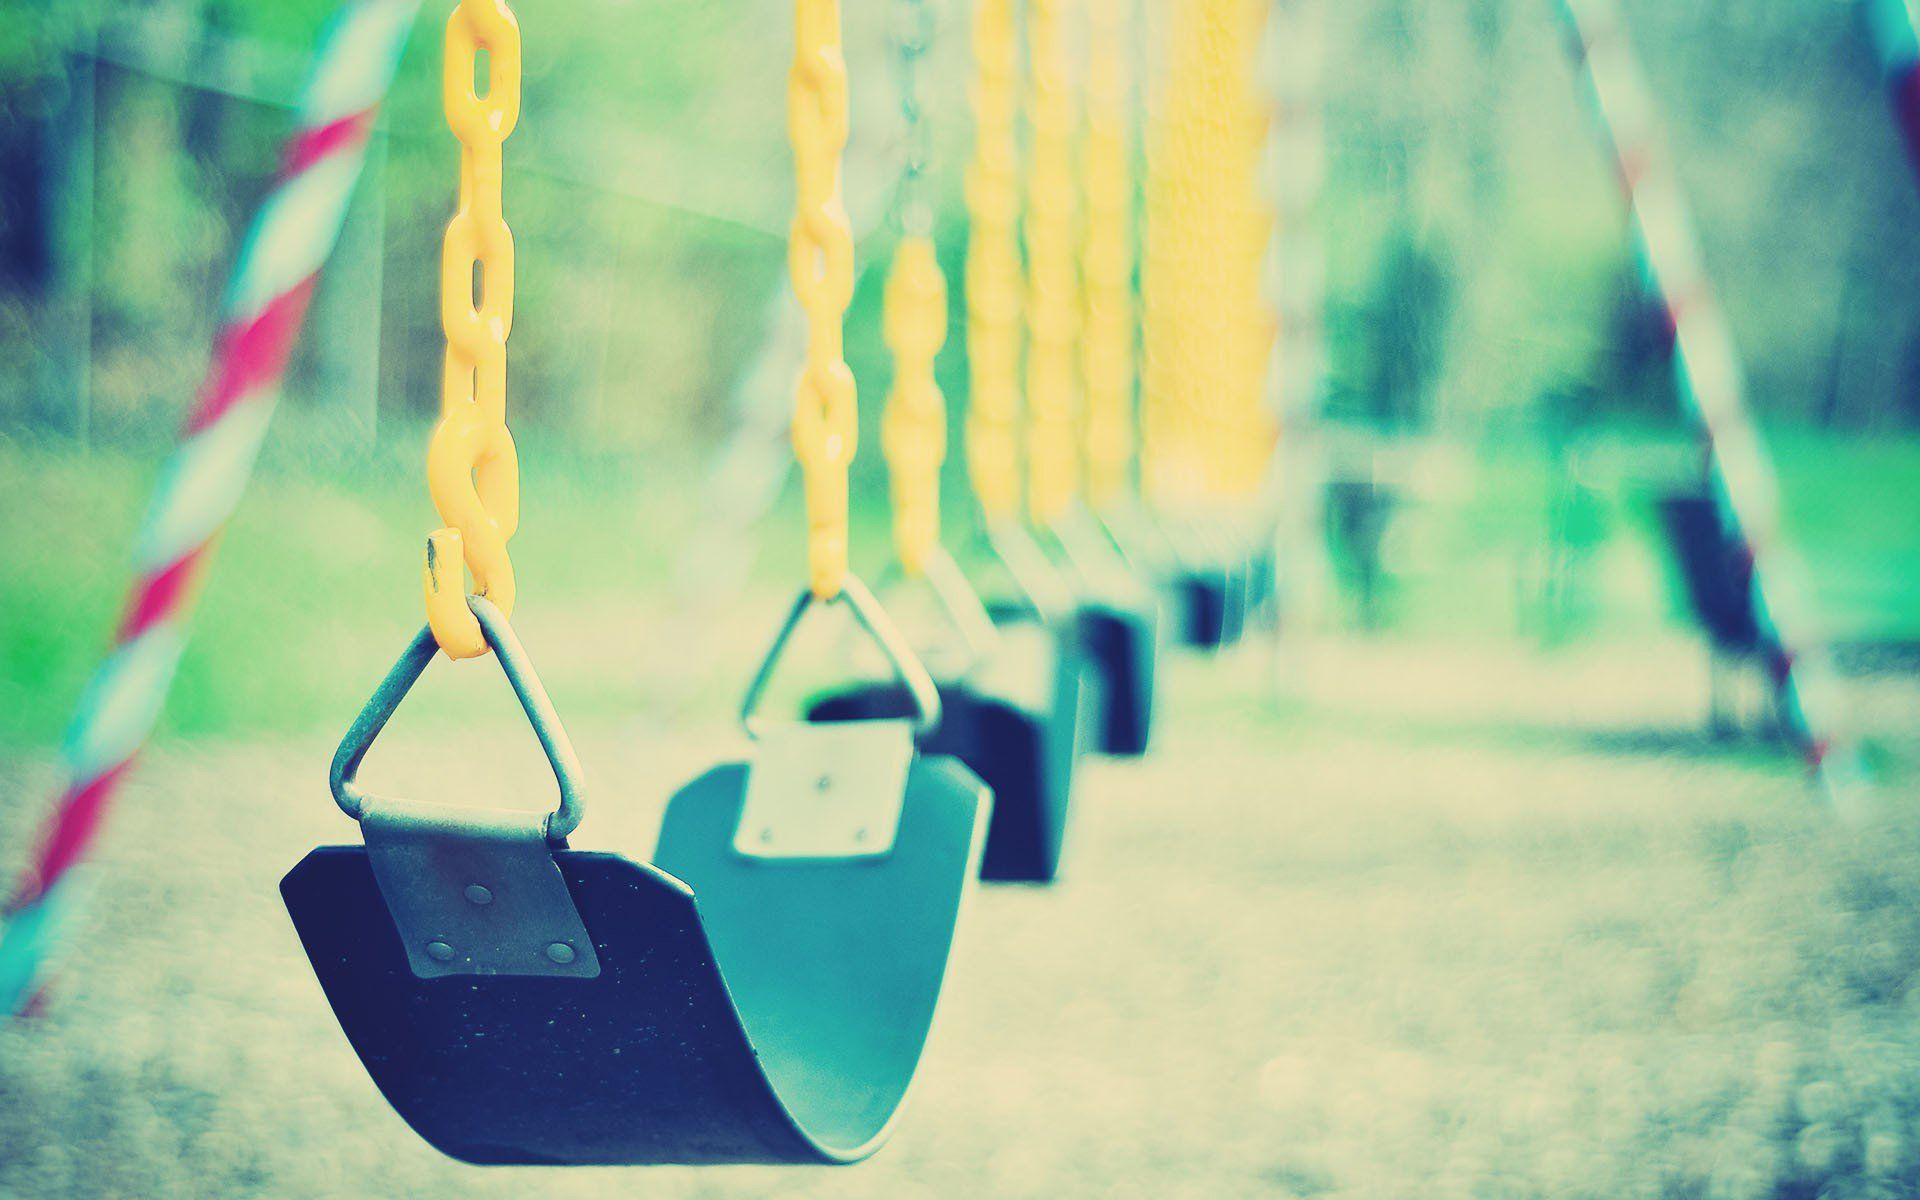 13 Swing HD Wallpapers | Backgrounds - Wallpaper Abyss